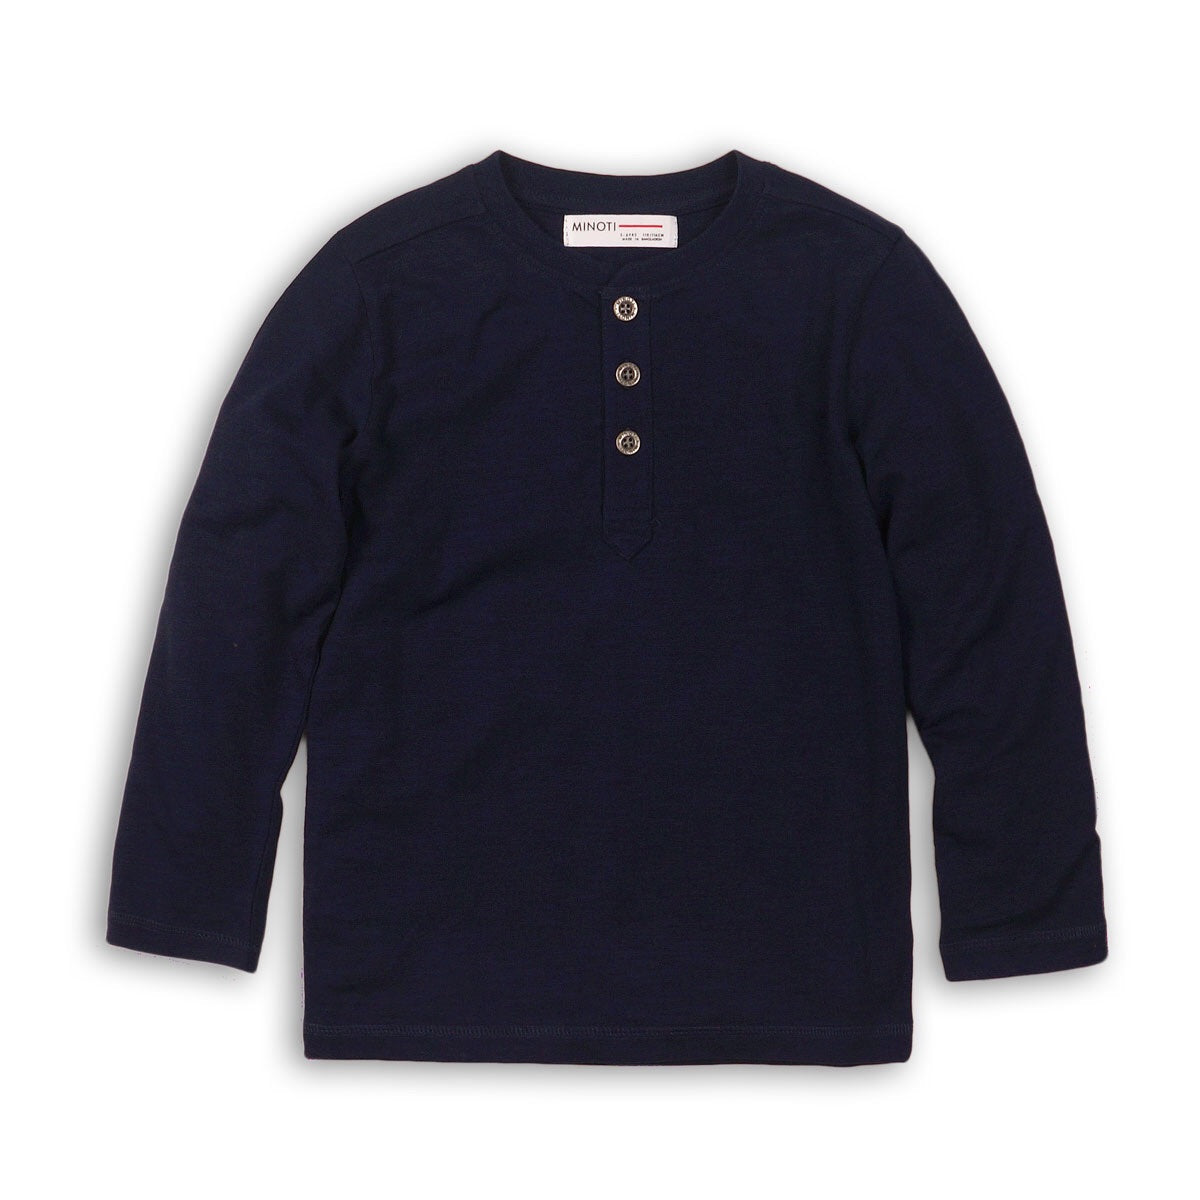 Navy long sleeved Henley jersey cotton top (9 months to 3 years)